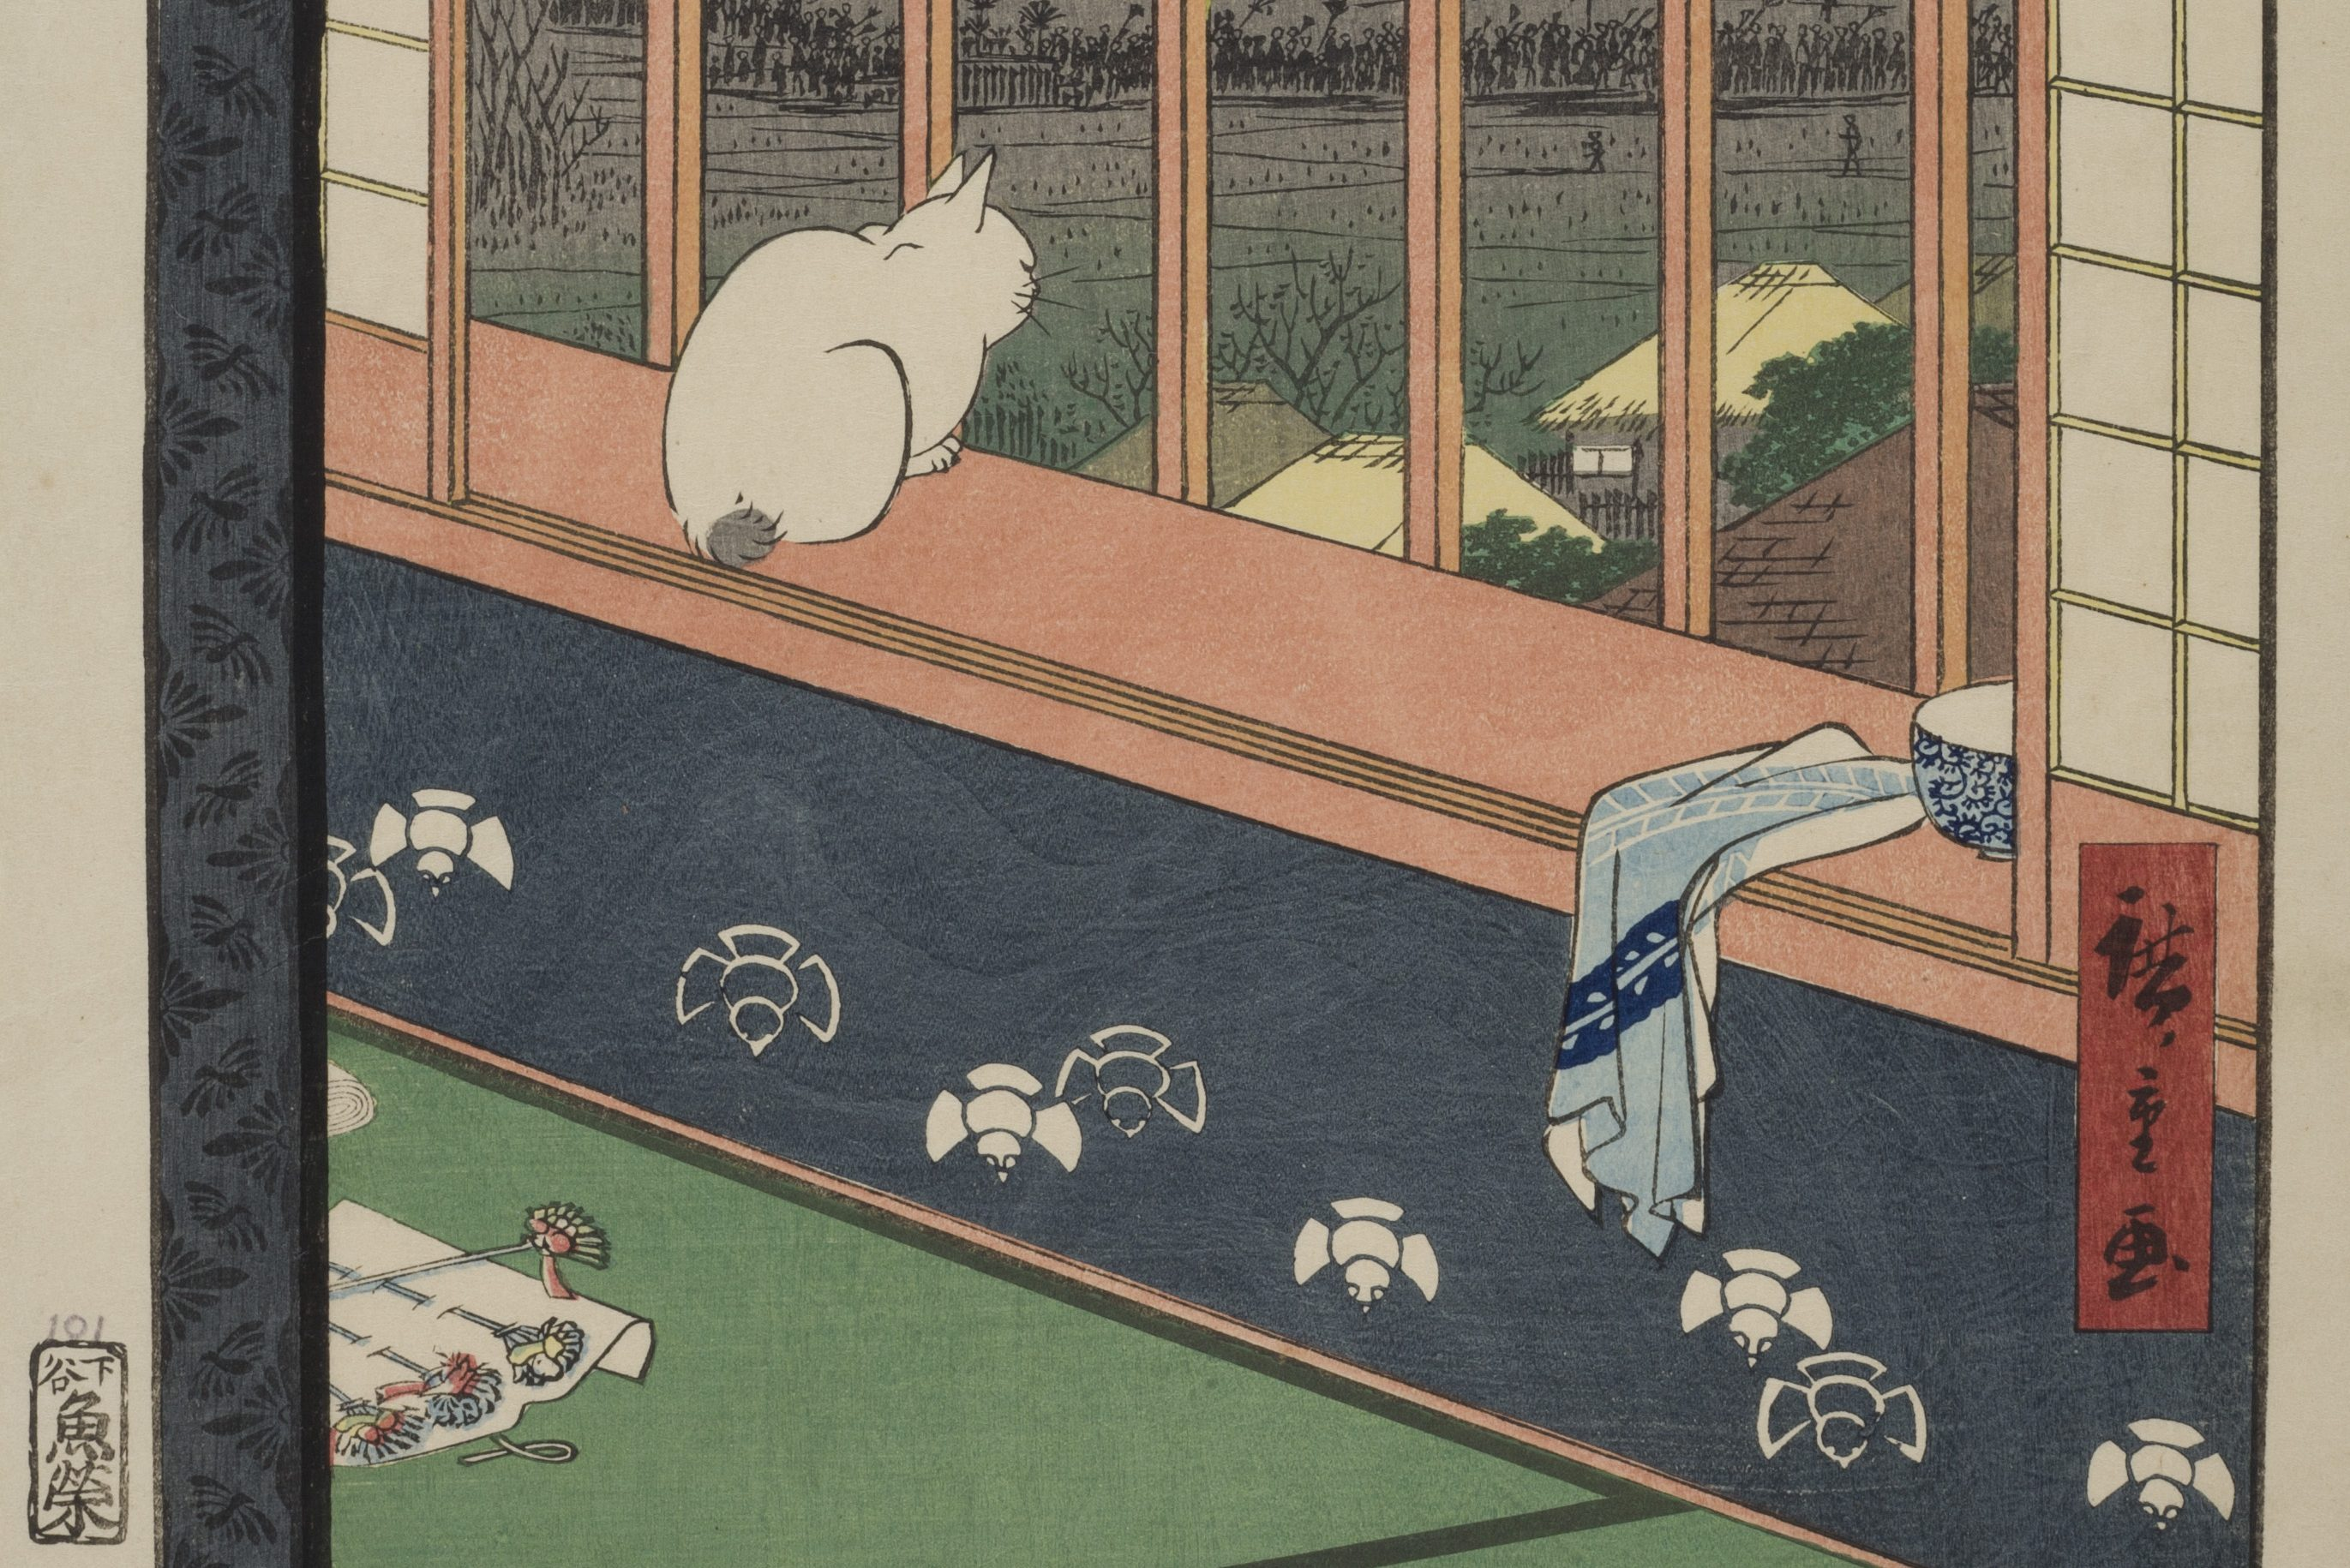 A section of an ink and color painting depicts a cat, seated on a windowsill, overlooking rice fields, as well as a small grouping of tan-roofed houses. A blue towel is draped over the edge of the windowsill, beside a blue bowl. Flowers attached in a row to a piece of parchment on the ground is partly out of frame.